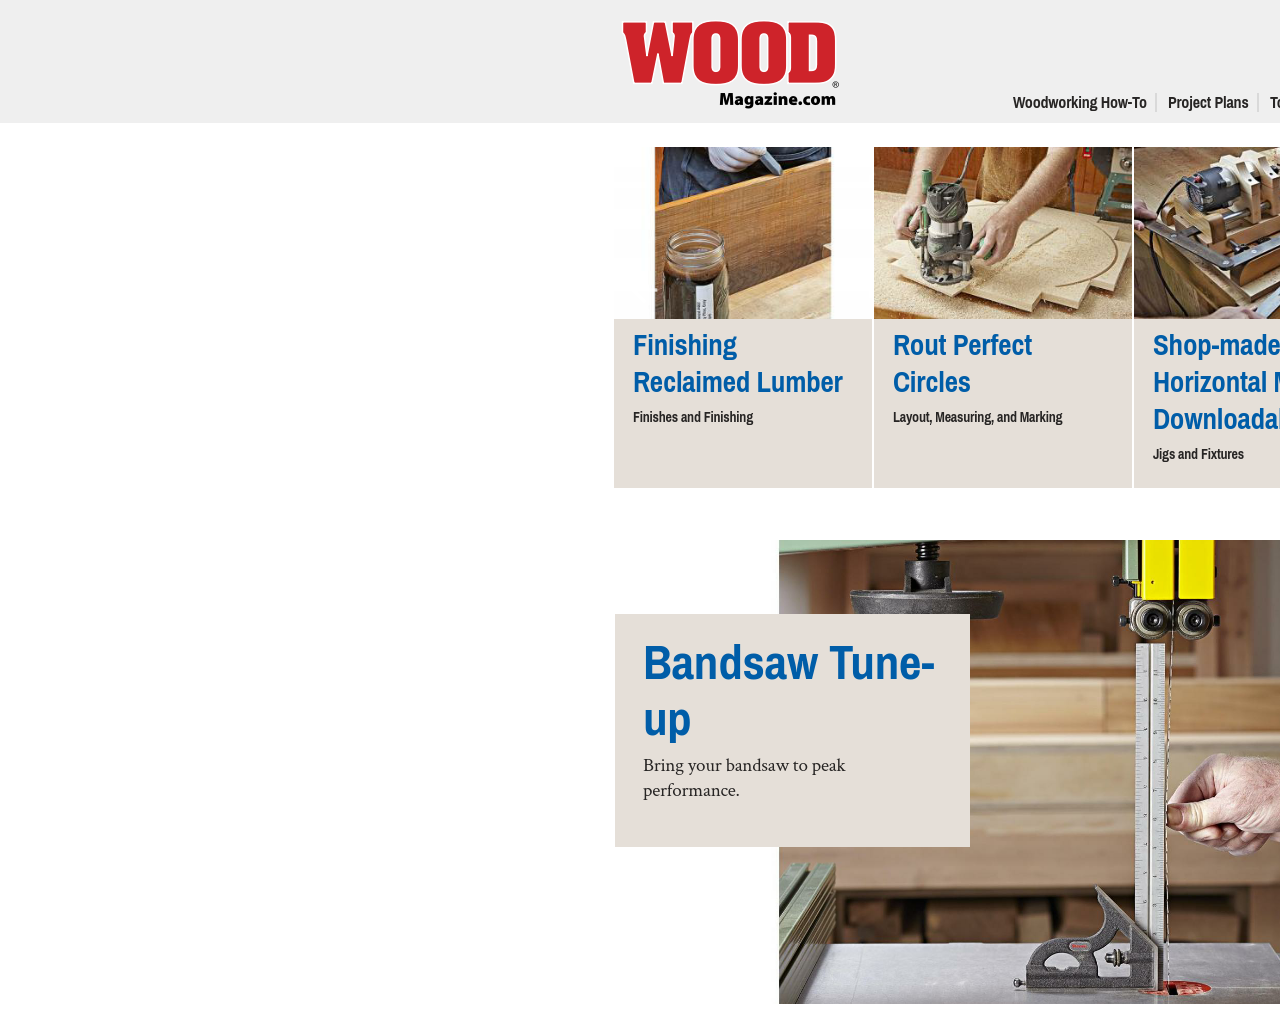 WOOD-Magazine-Advertising-Reviews-Pricing